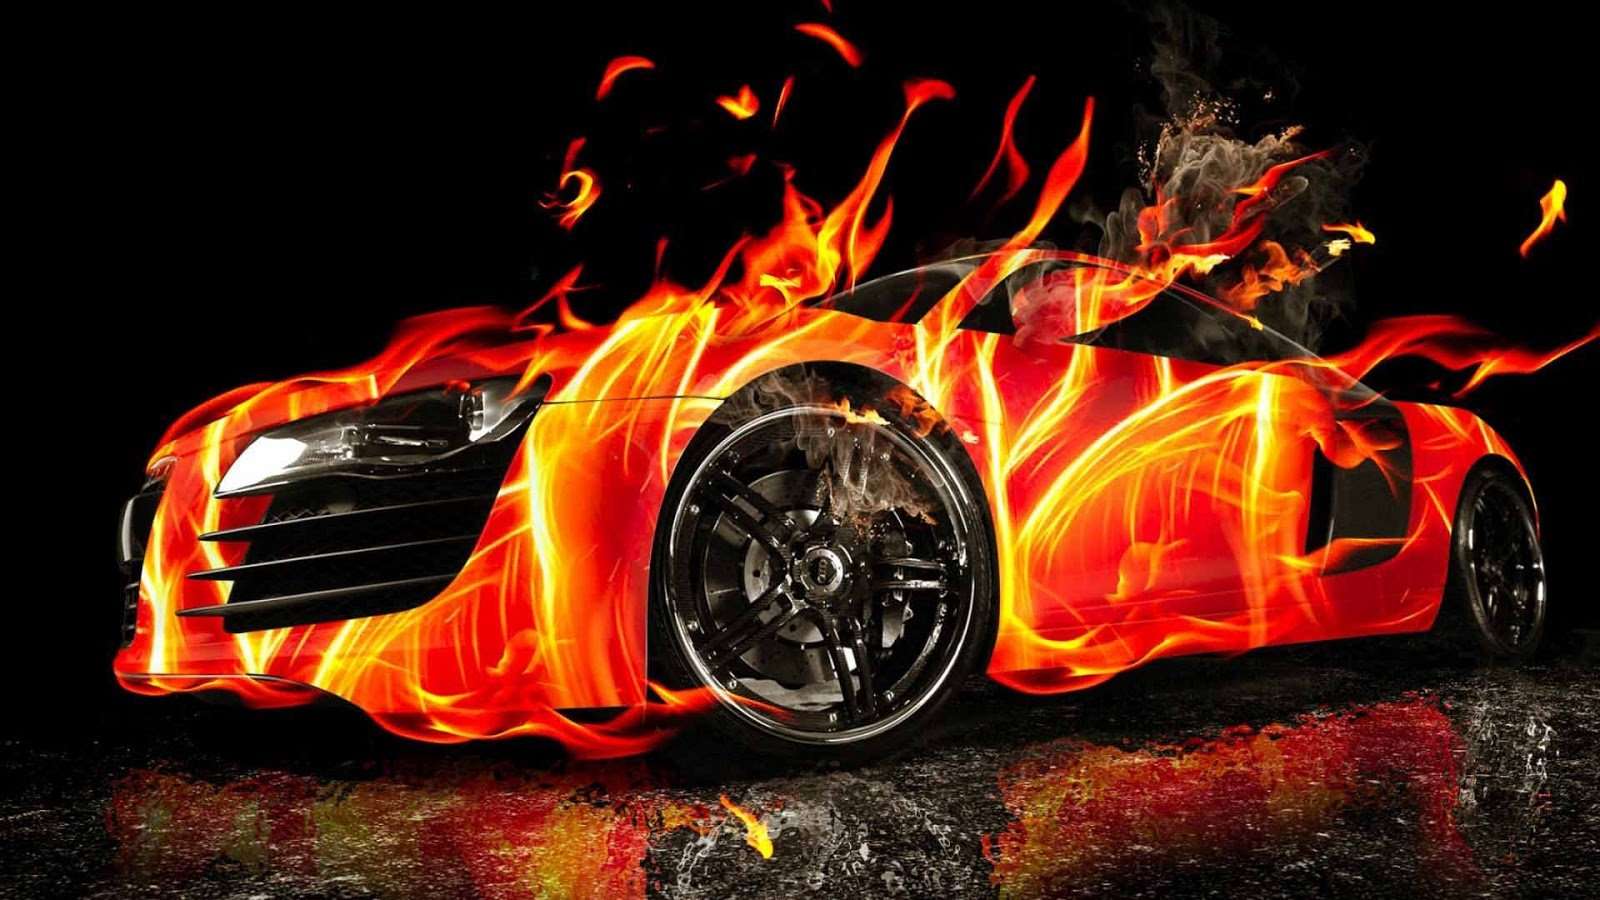 Cool Car Fire Art Wallpaper 5293 Wallpaper Wallpaper Screen 1600x900